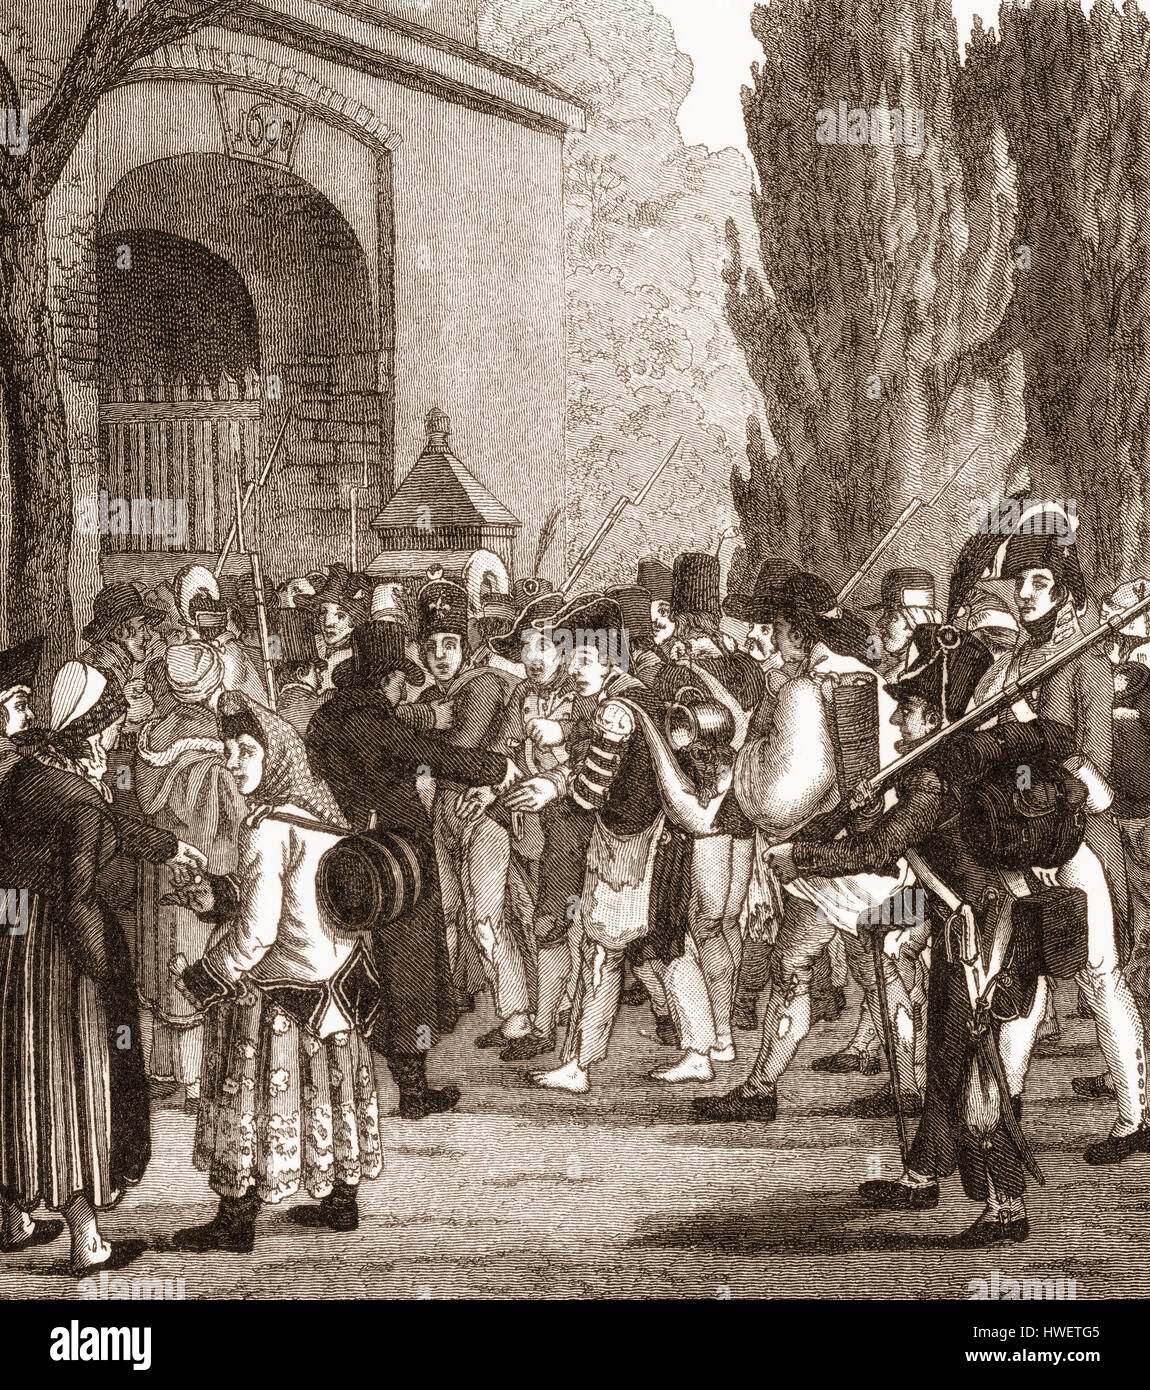 Passing of the Prussian prisoners, Napoleonic Wars, after the twin battles of Jena and Auerstädt, 1806, - Stock Image